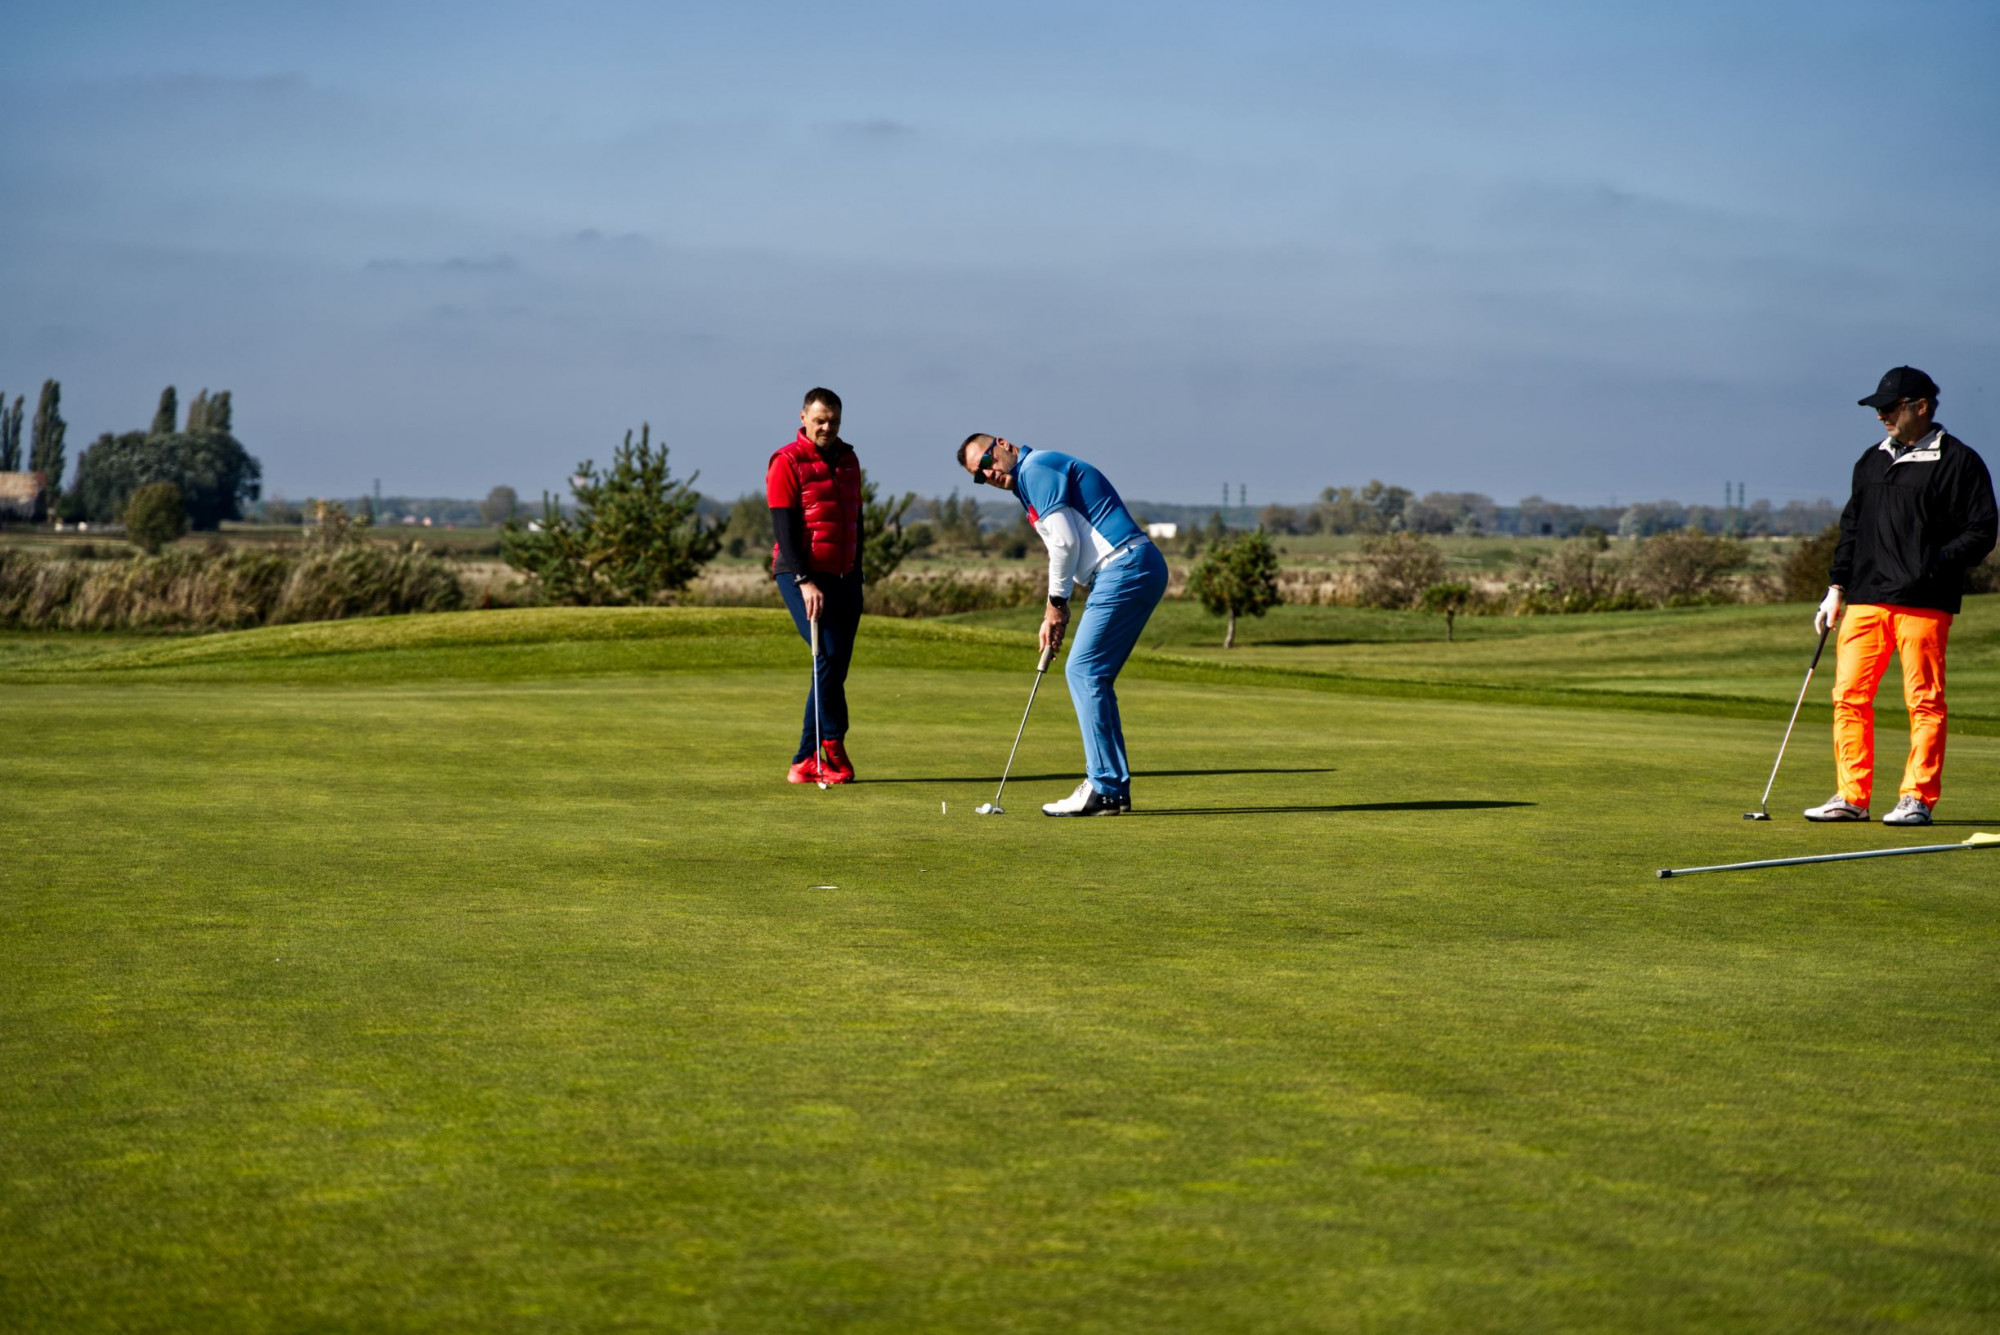 A golf lesson with a professional coach Tomáš Beck